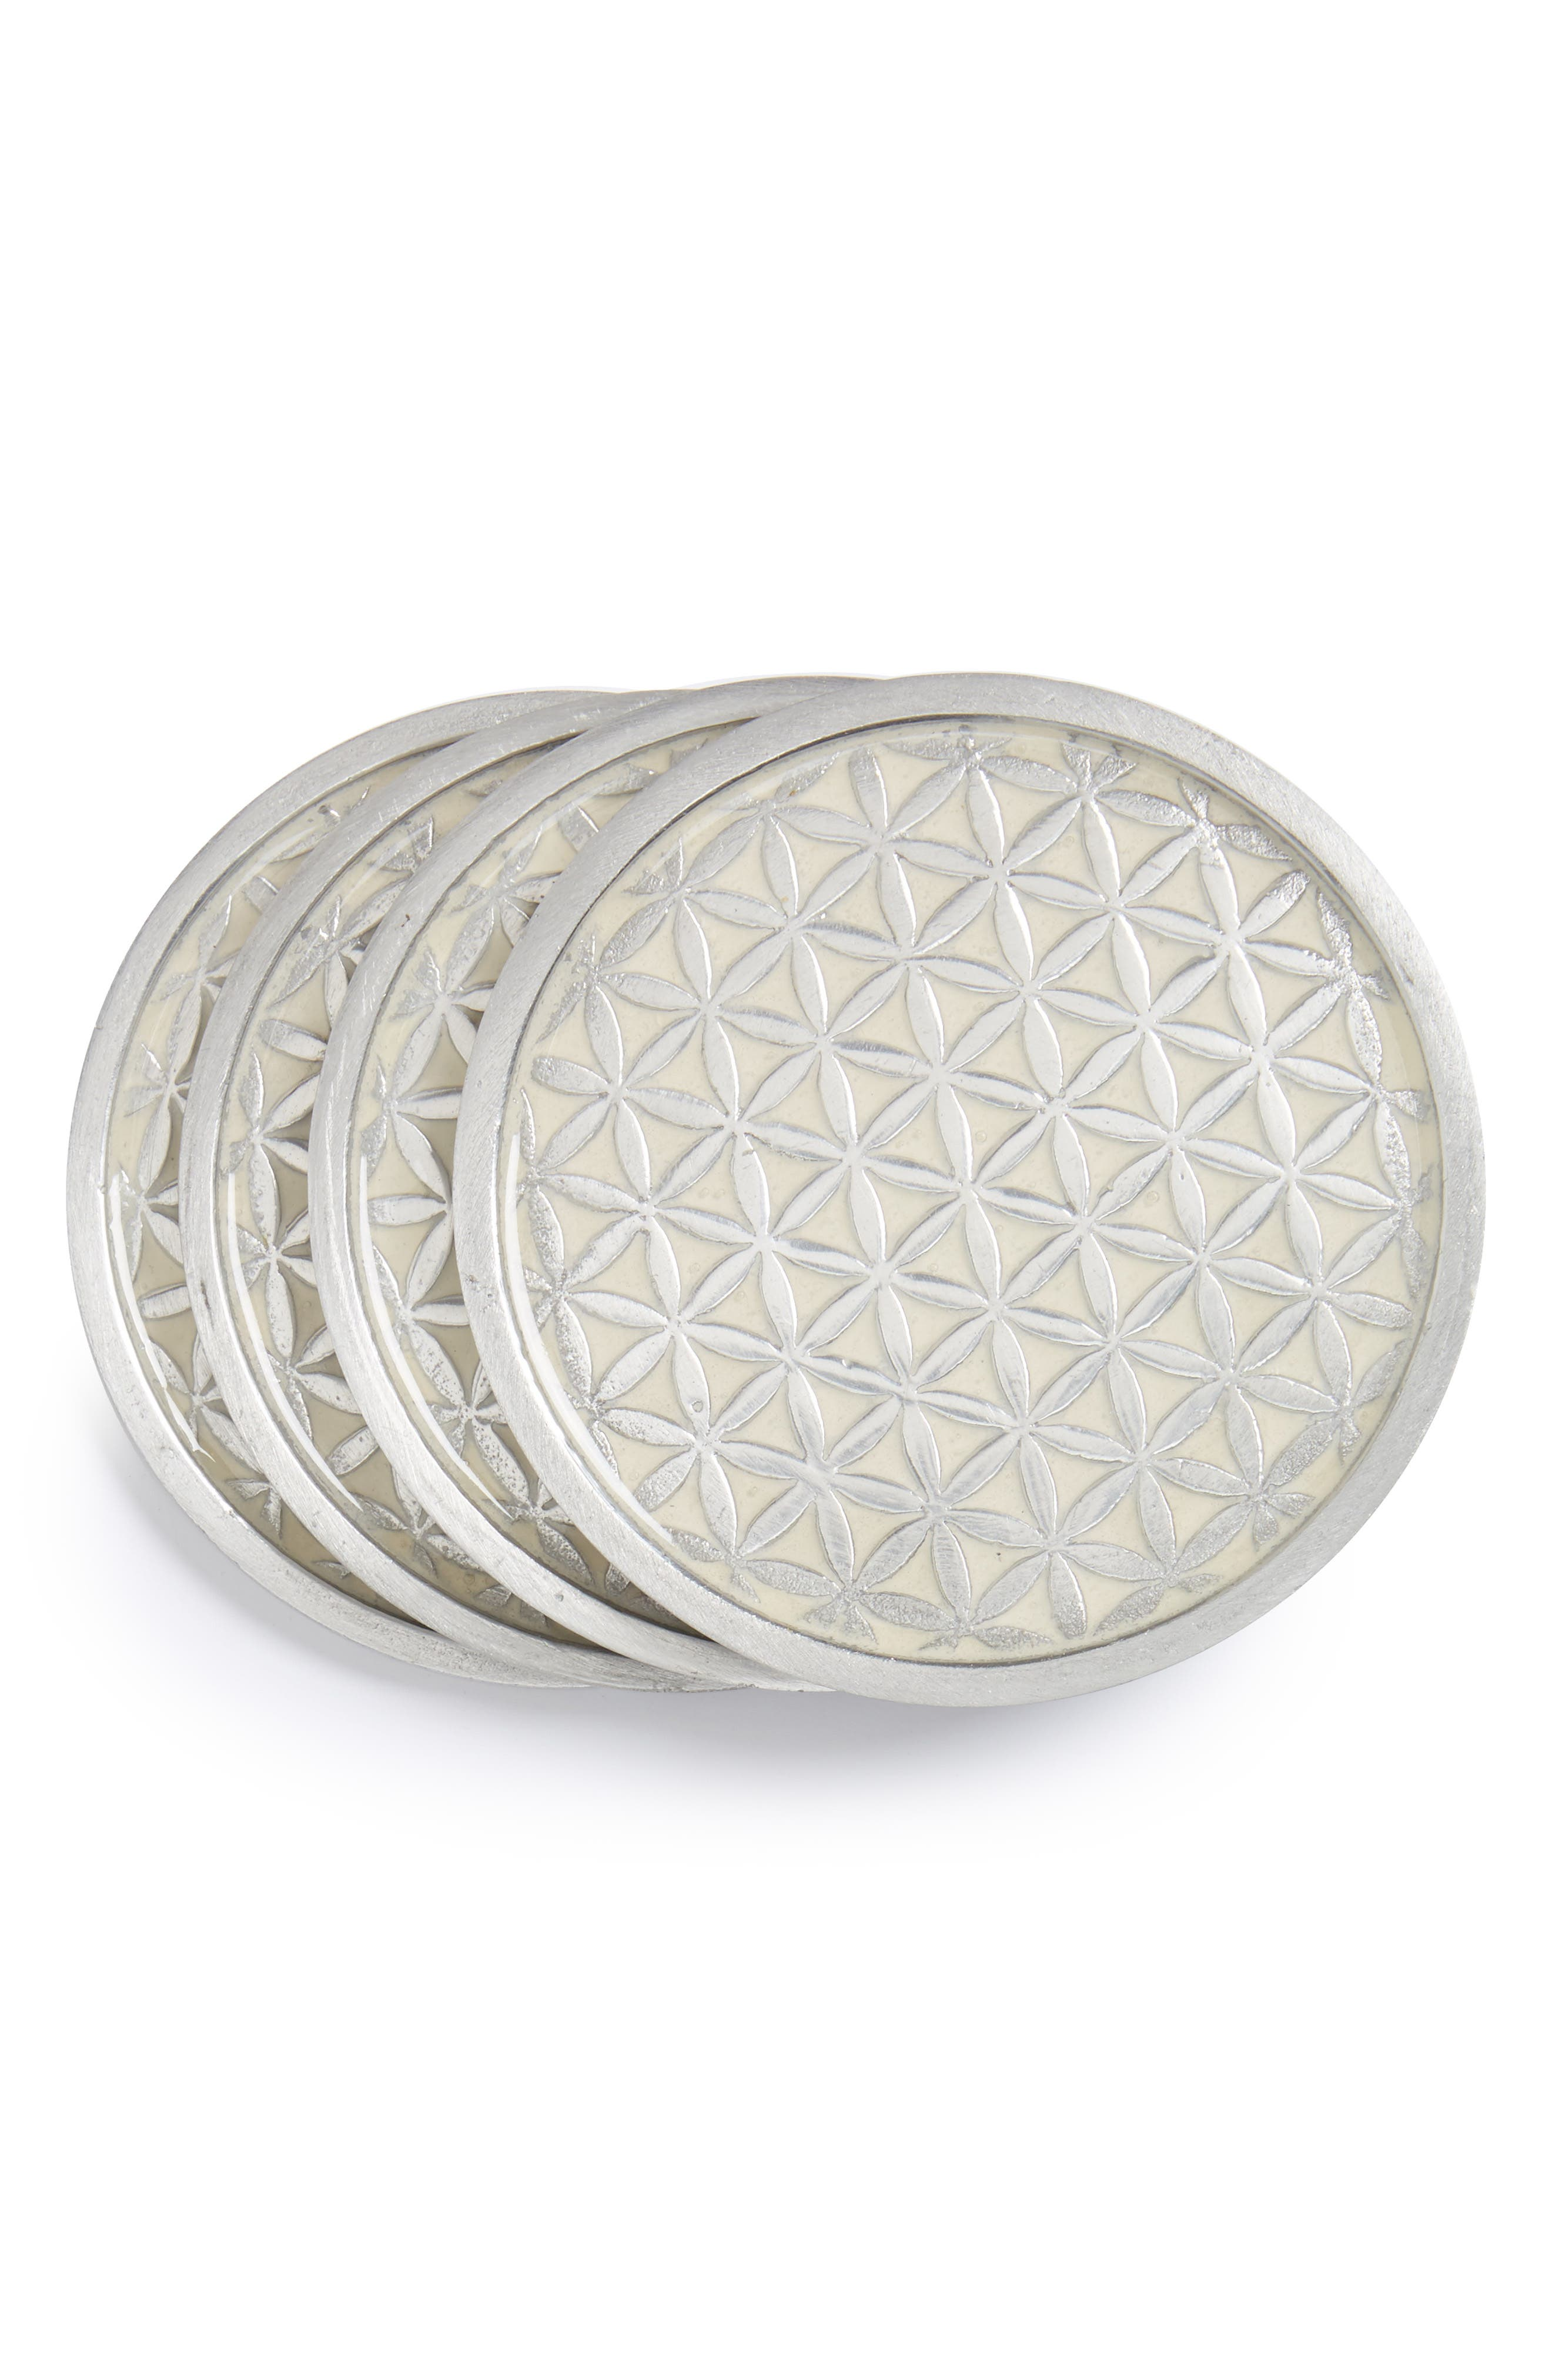 Flower of Life Set of 4 Coasters,                         Main,                         color, 100